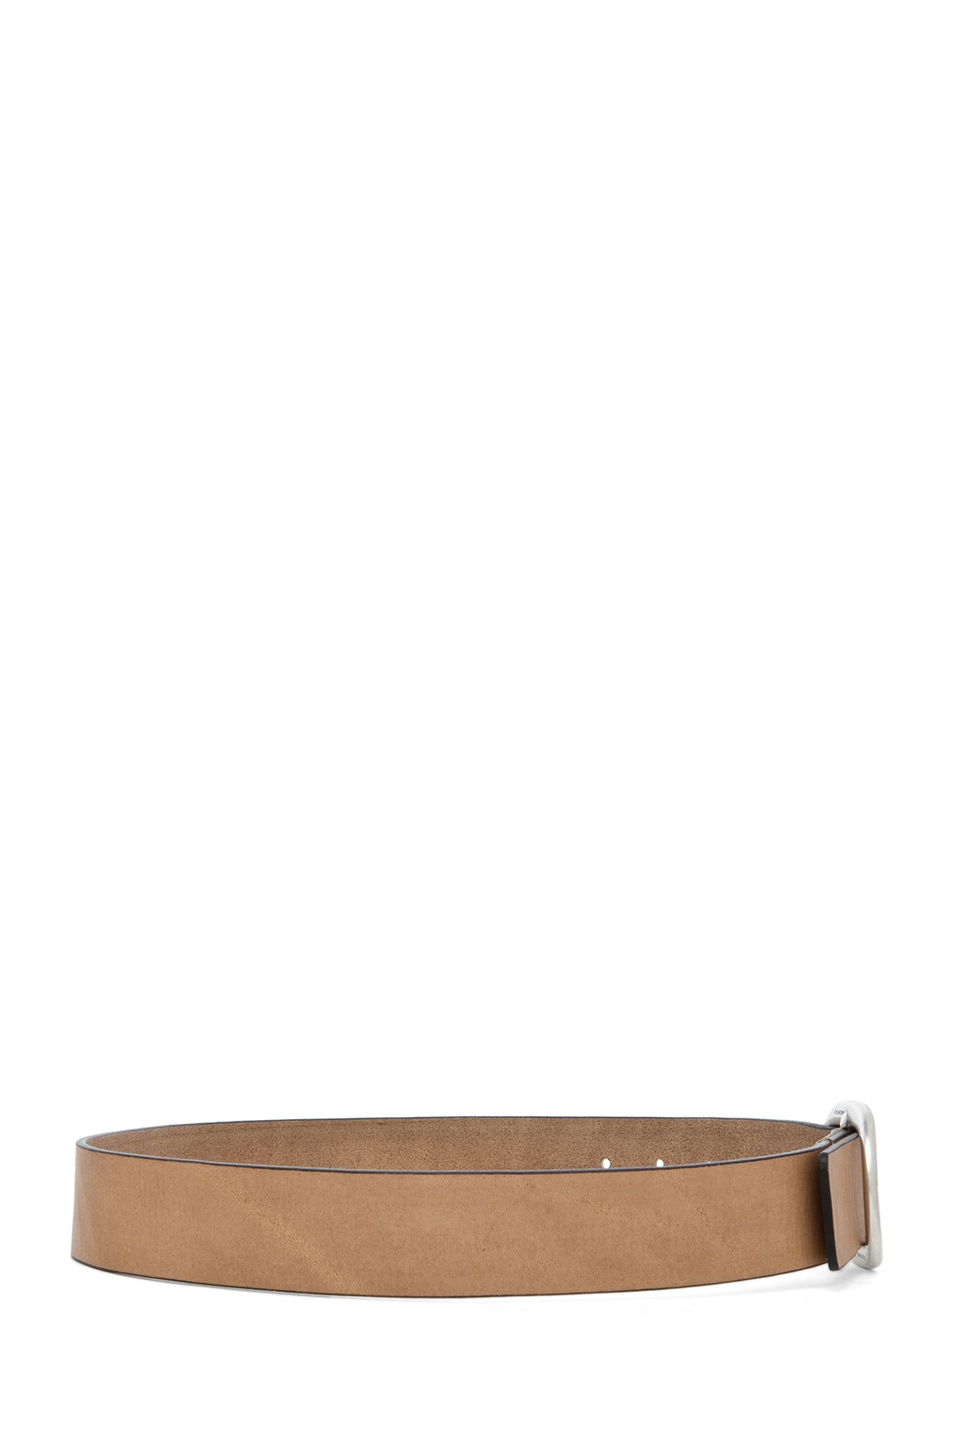 Image 3 of Isabel Marant Celia Leather Belt in Camel Argent